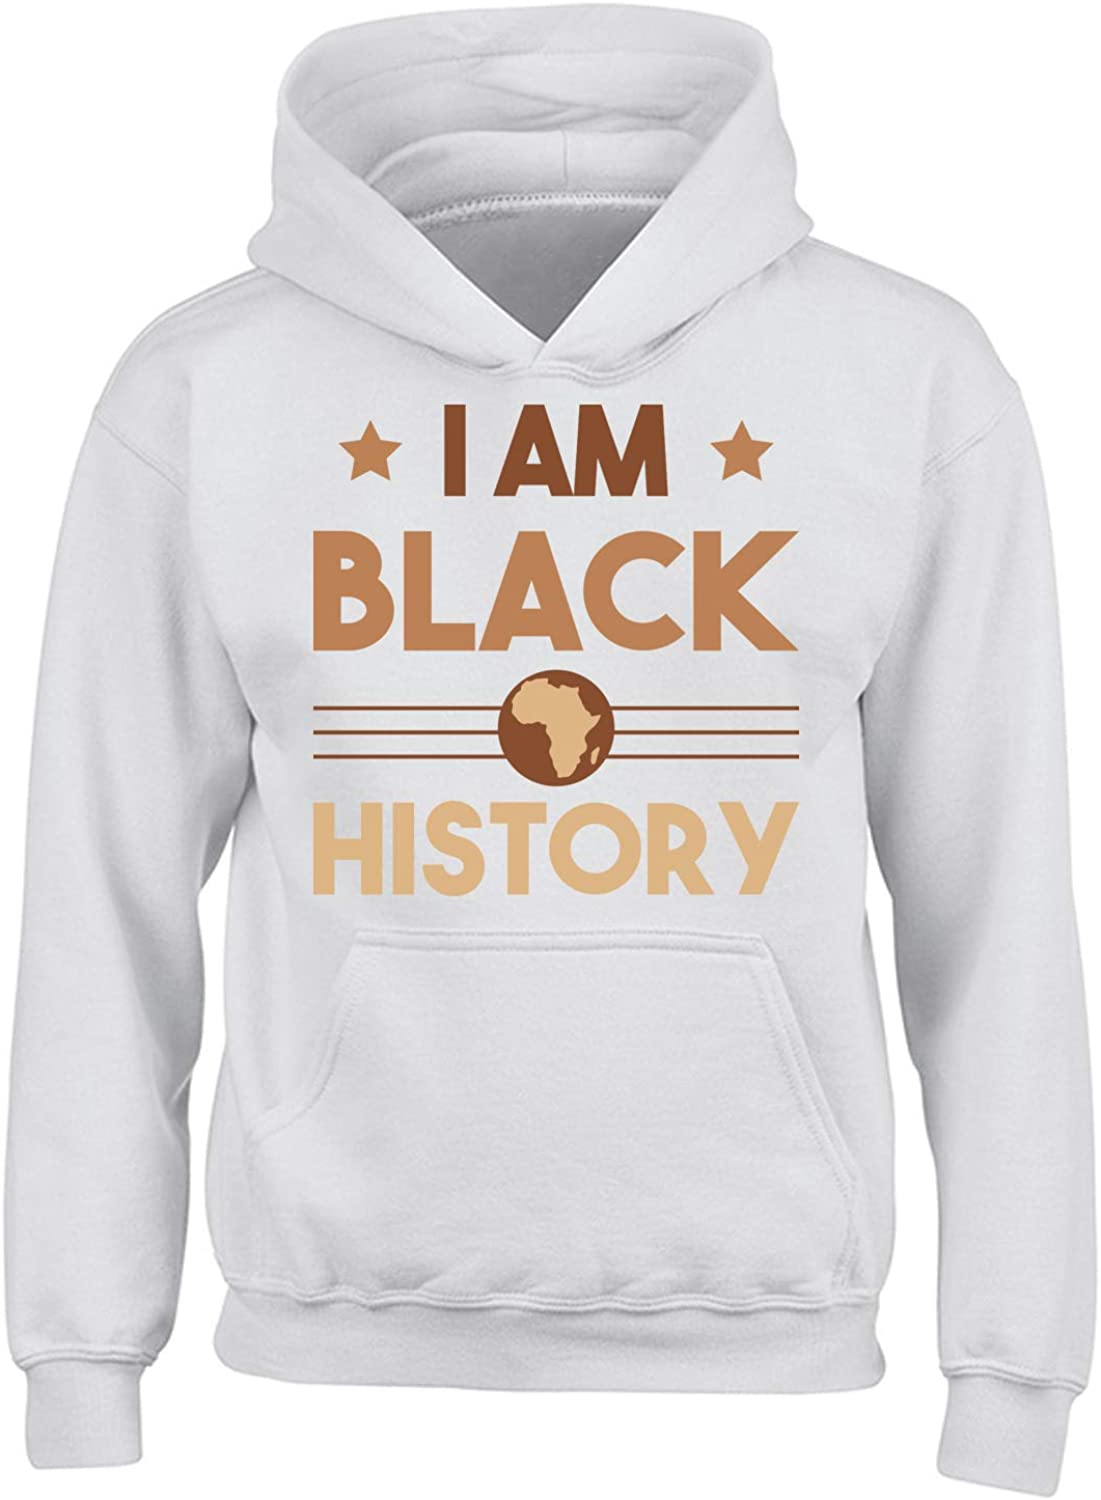 Black Lives Matter Clothes for Youth Teens Age 6 to 18 Black History Month Hoodie for Boys Girls